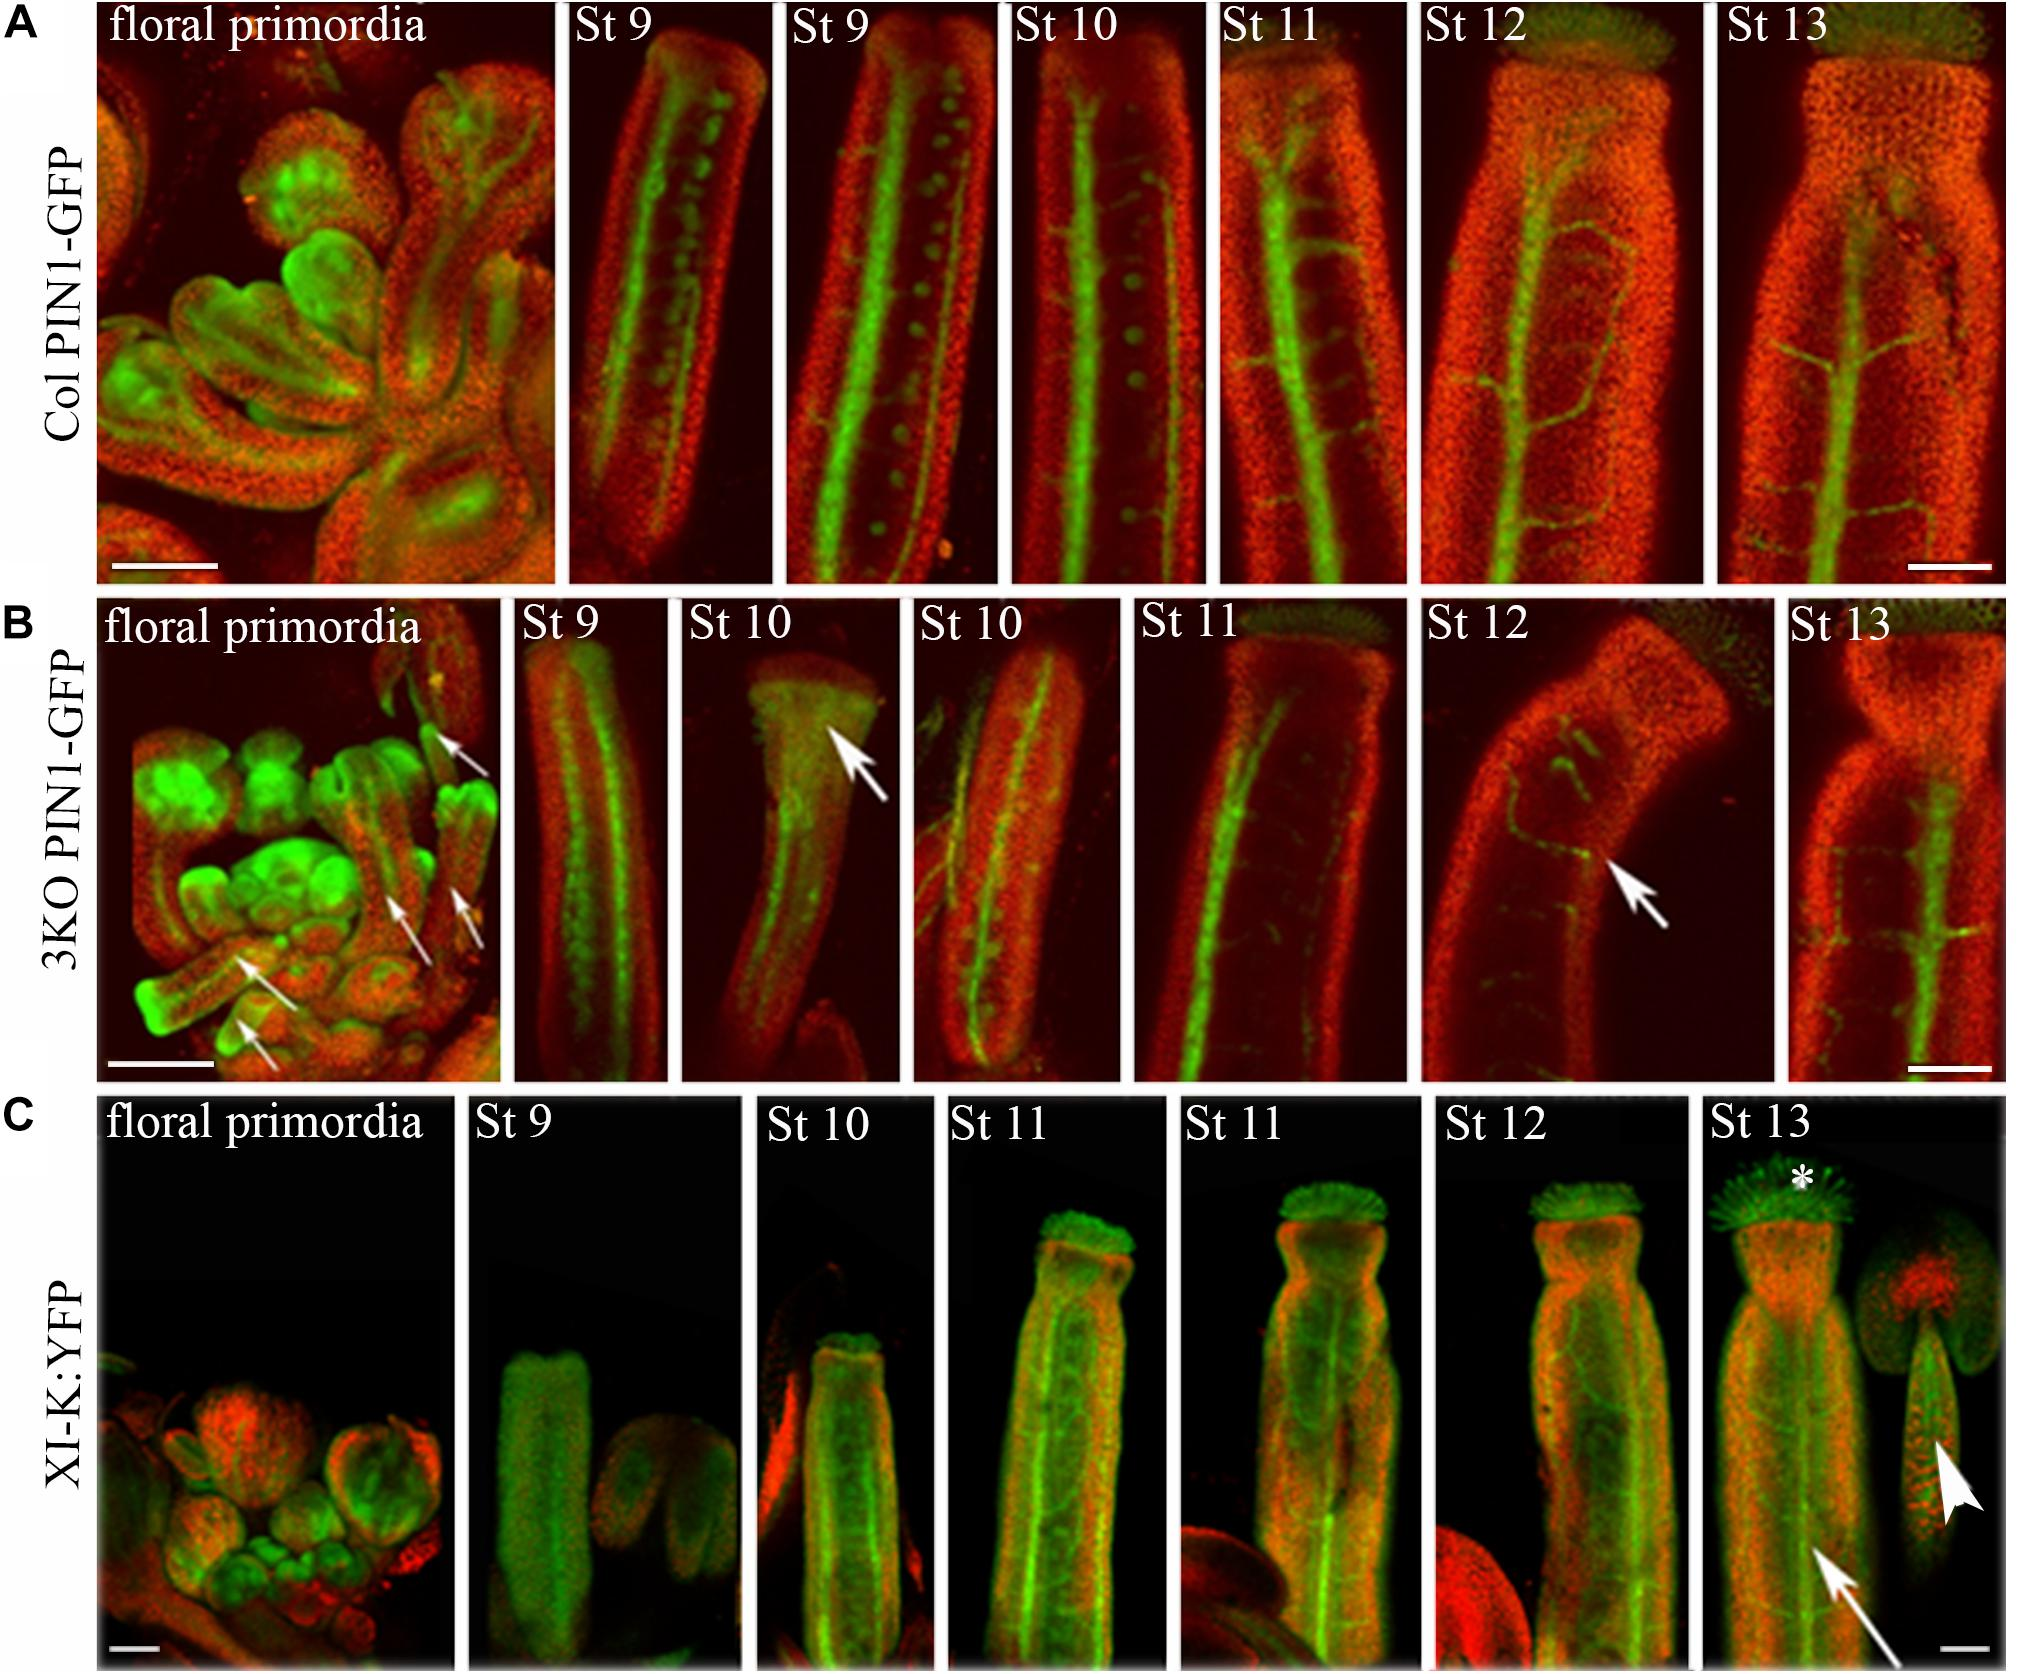 Frontiers | Class XI Myosins Contribute to Auxin Response and